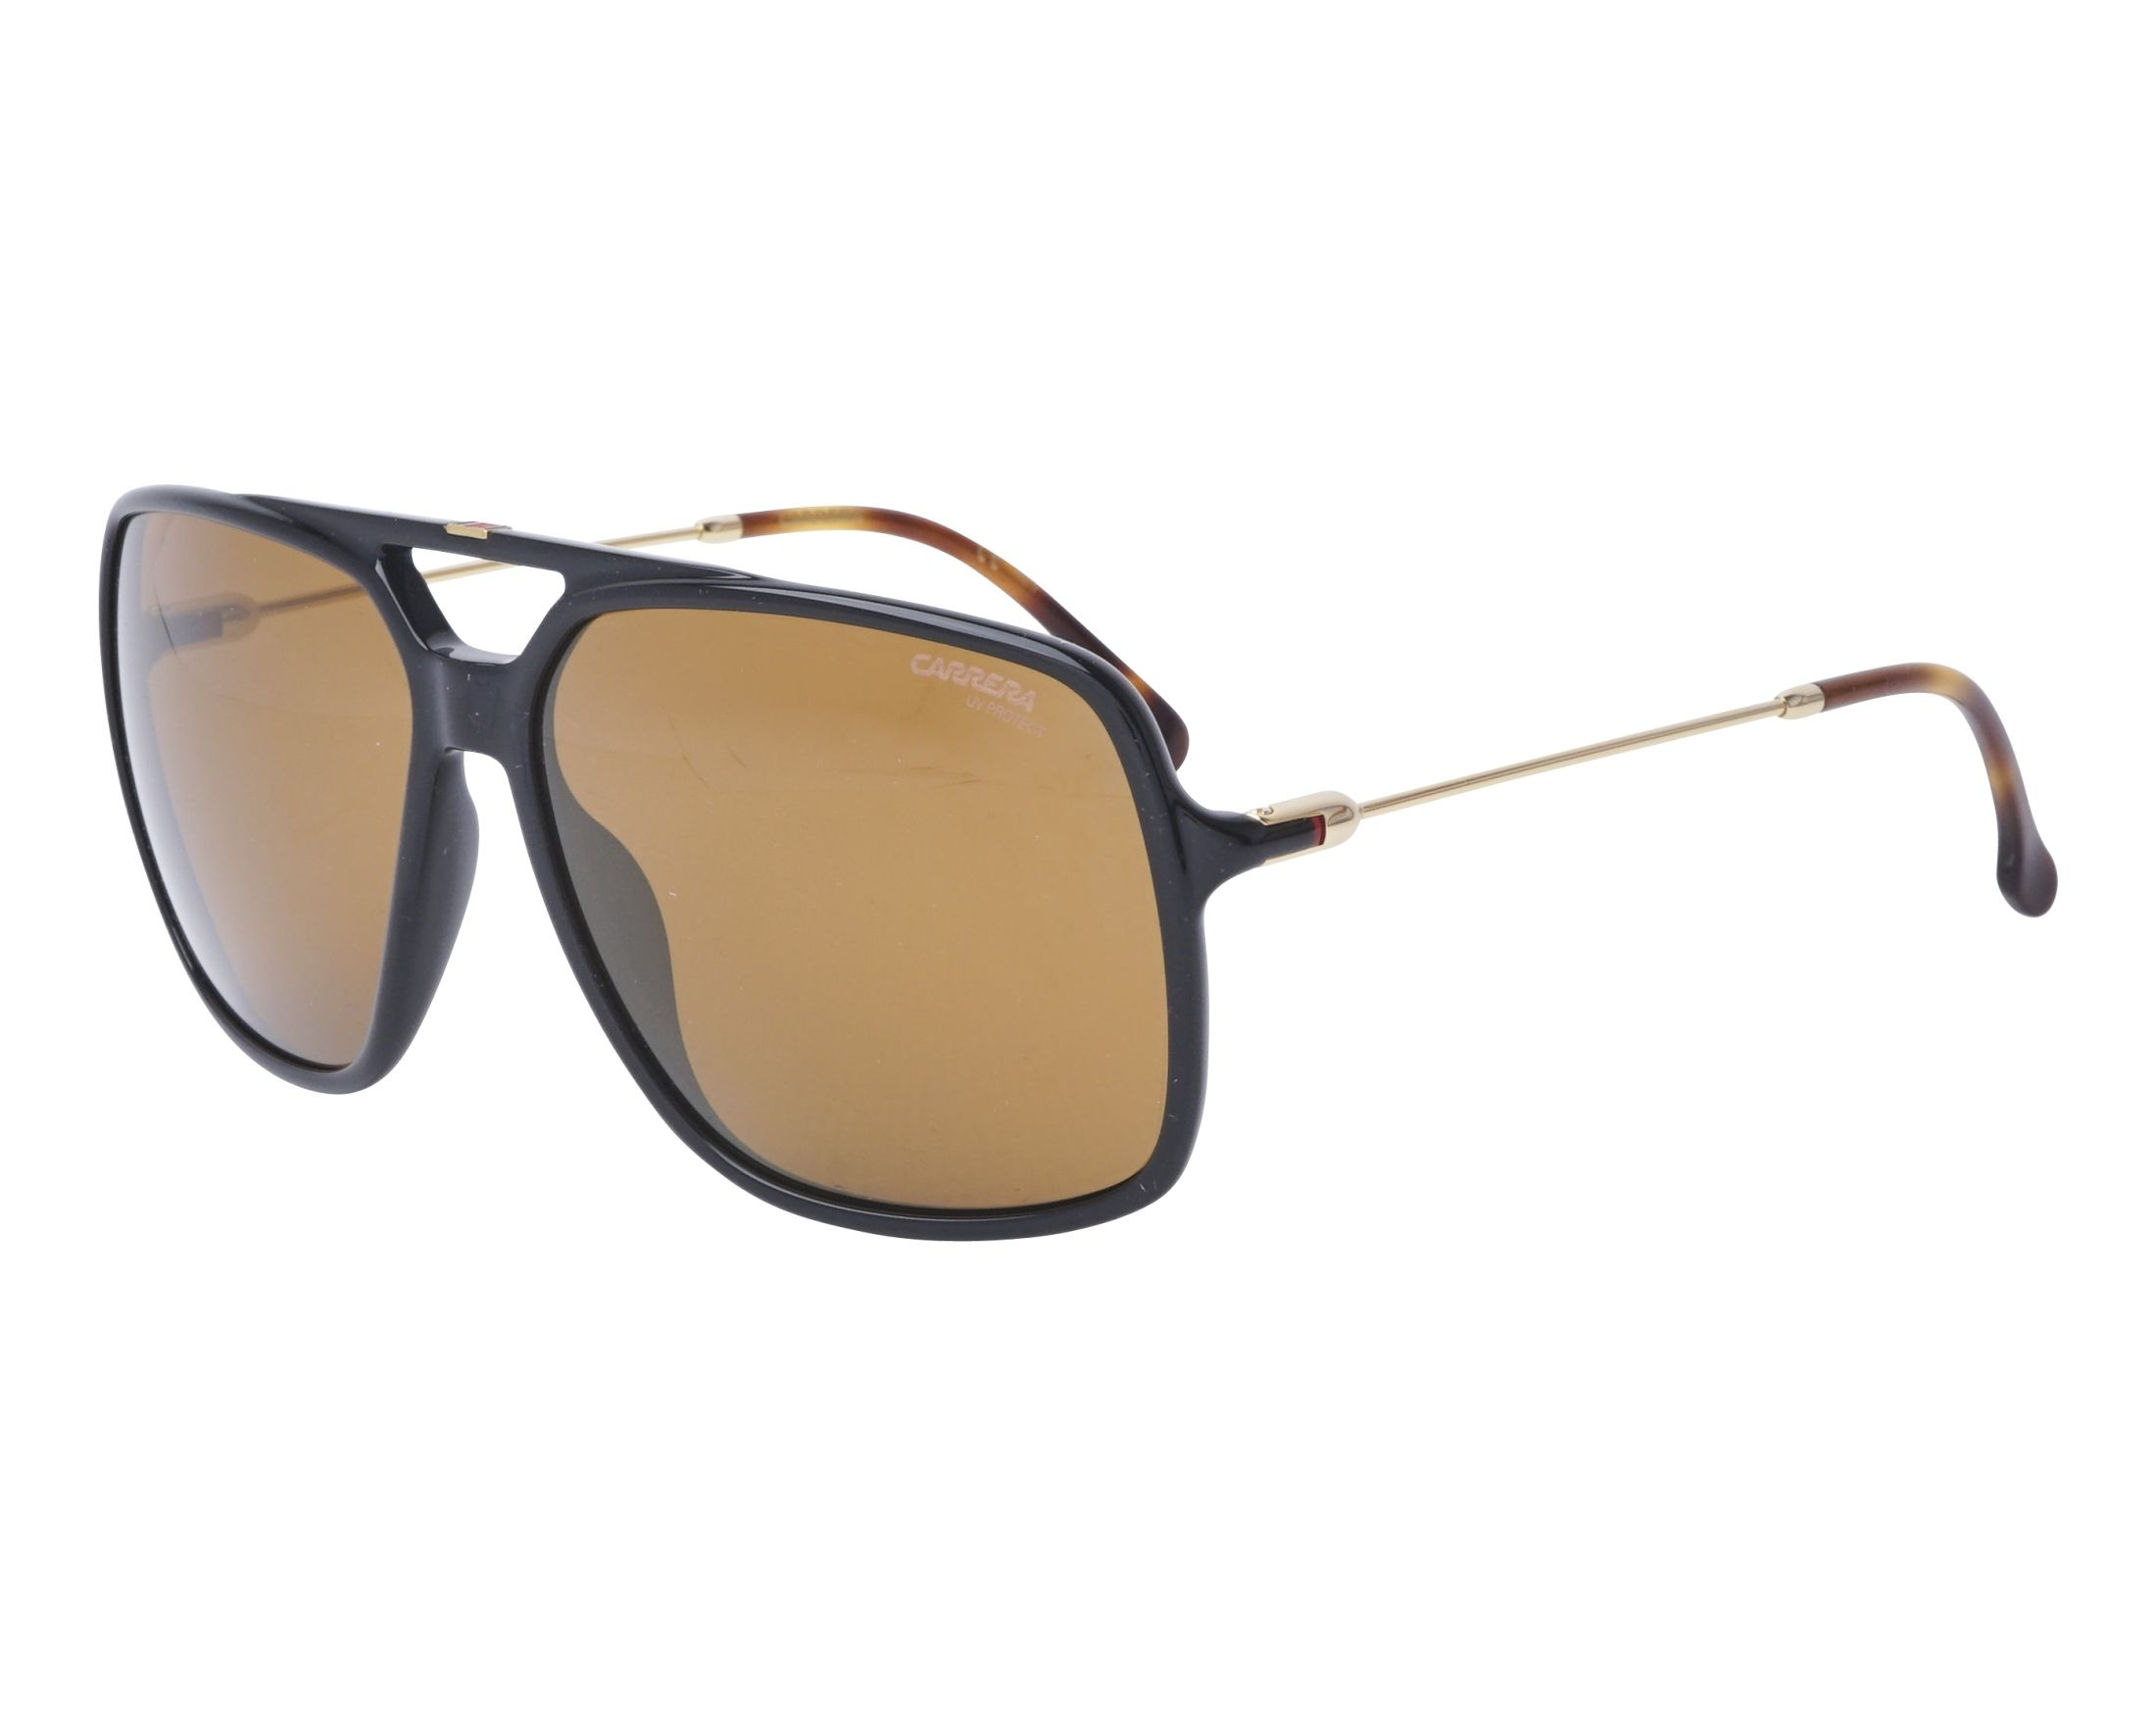 Buy Carrera Sunglasses 155-S 807K1 Online - Visionet